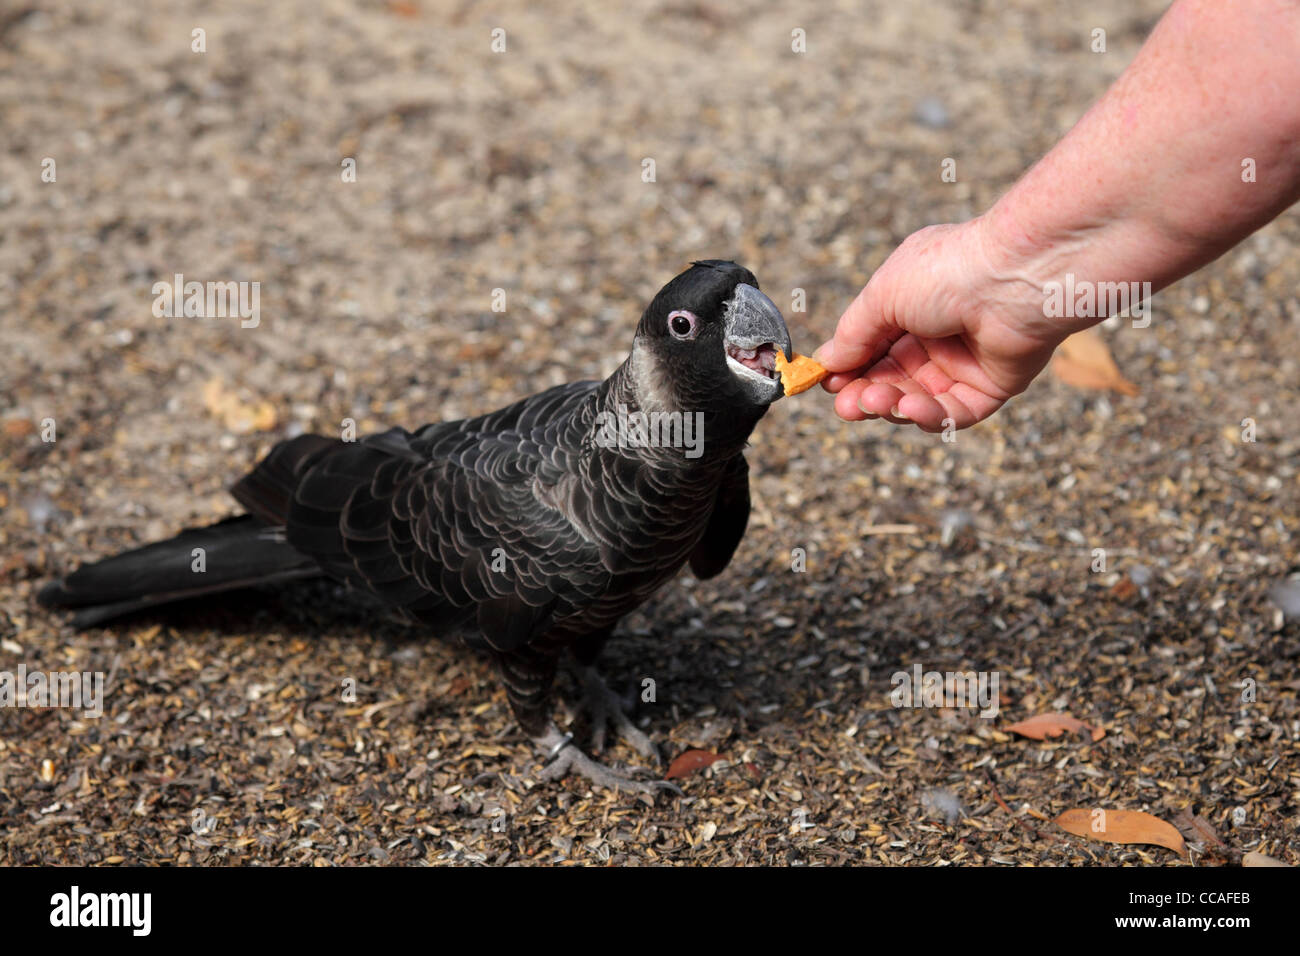 A Carnaby's Black Cockatoo is fed by hand at the Black Cockatoo Rehabilitation Center at Nannup, Western Australia, - Stock Image